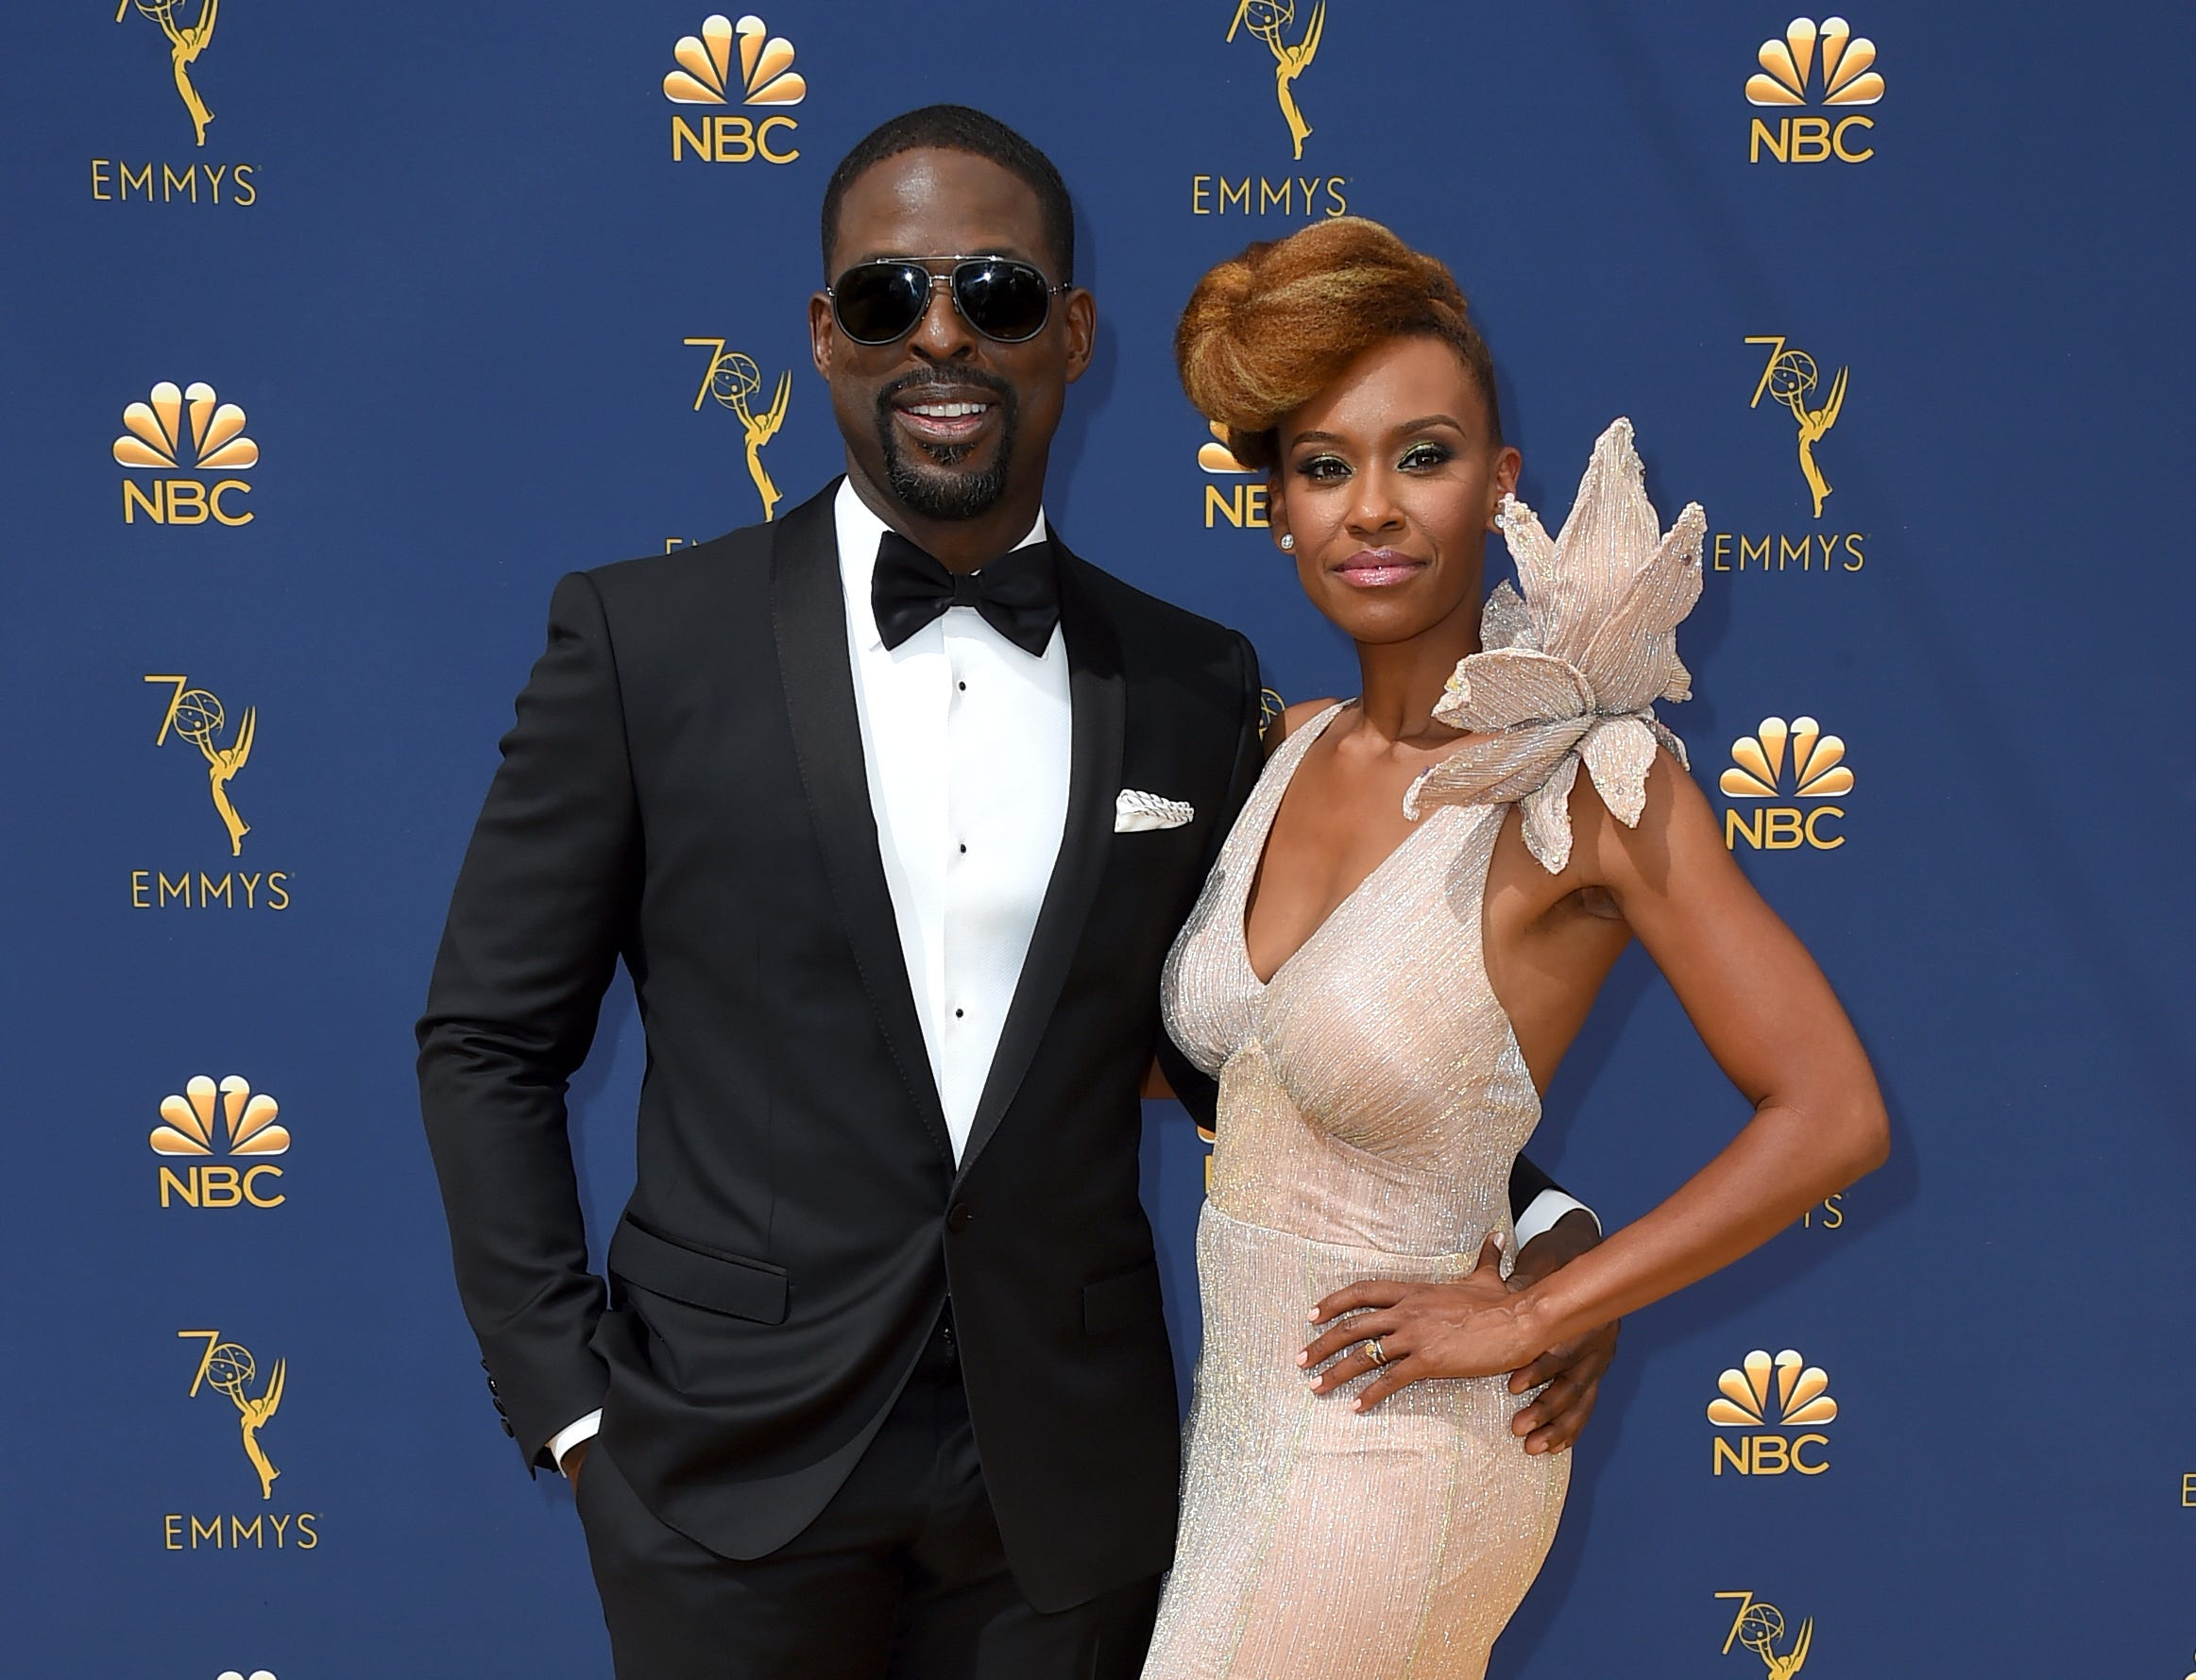 Sterling K. Brown, left, and Ryan Michelle Bathe arrive at the 70th Primetime Emmy Awards on Monday, Sept. 17, 2018, at the Microsoft Theater in Los Angeles.